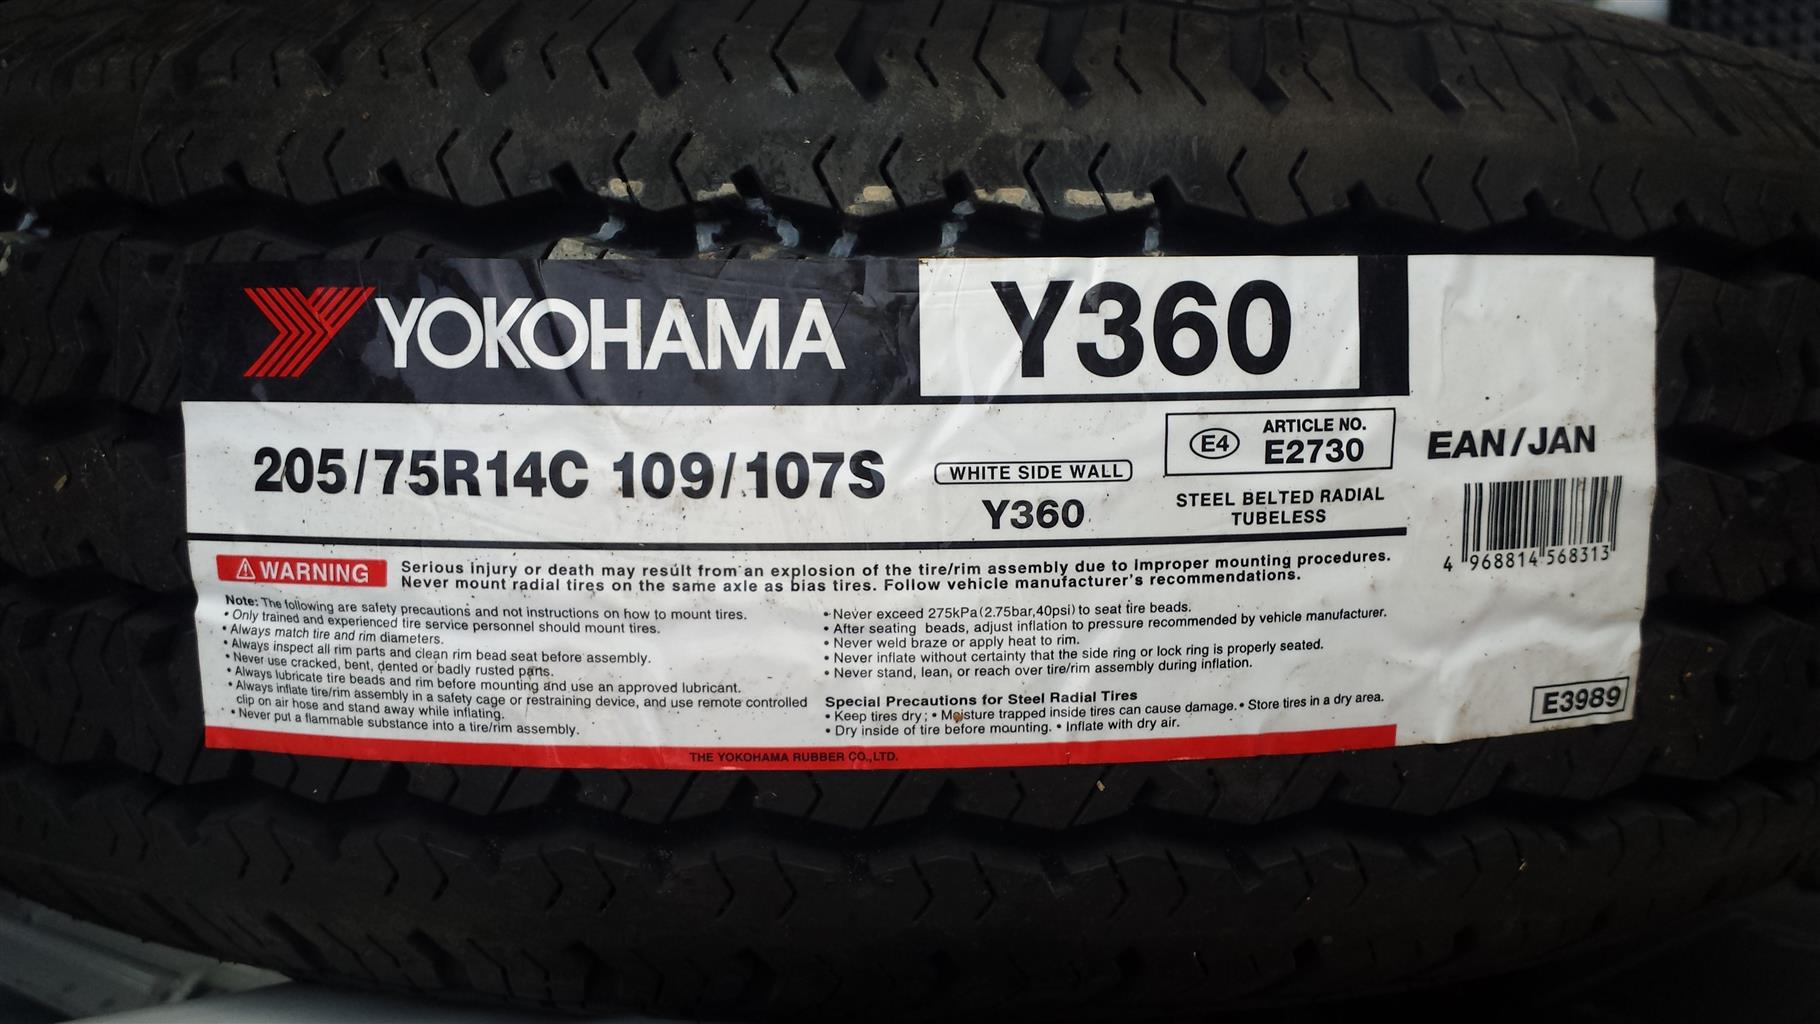 Yokohama Whitewall tyres